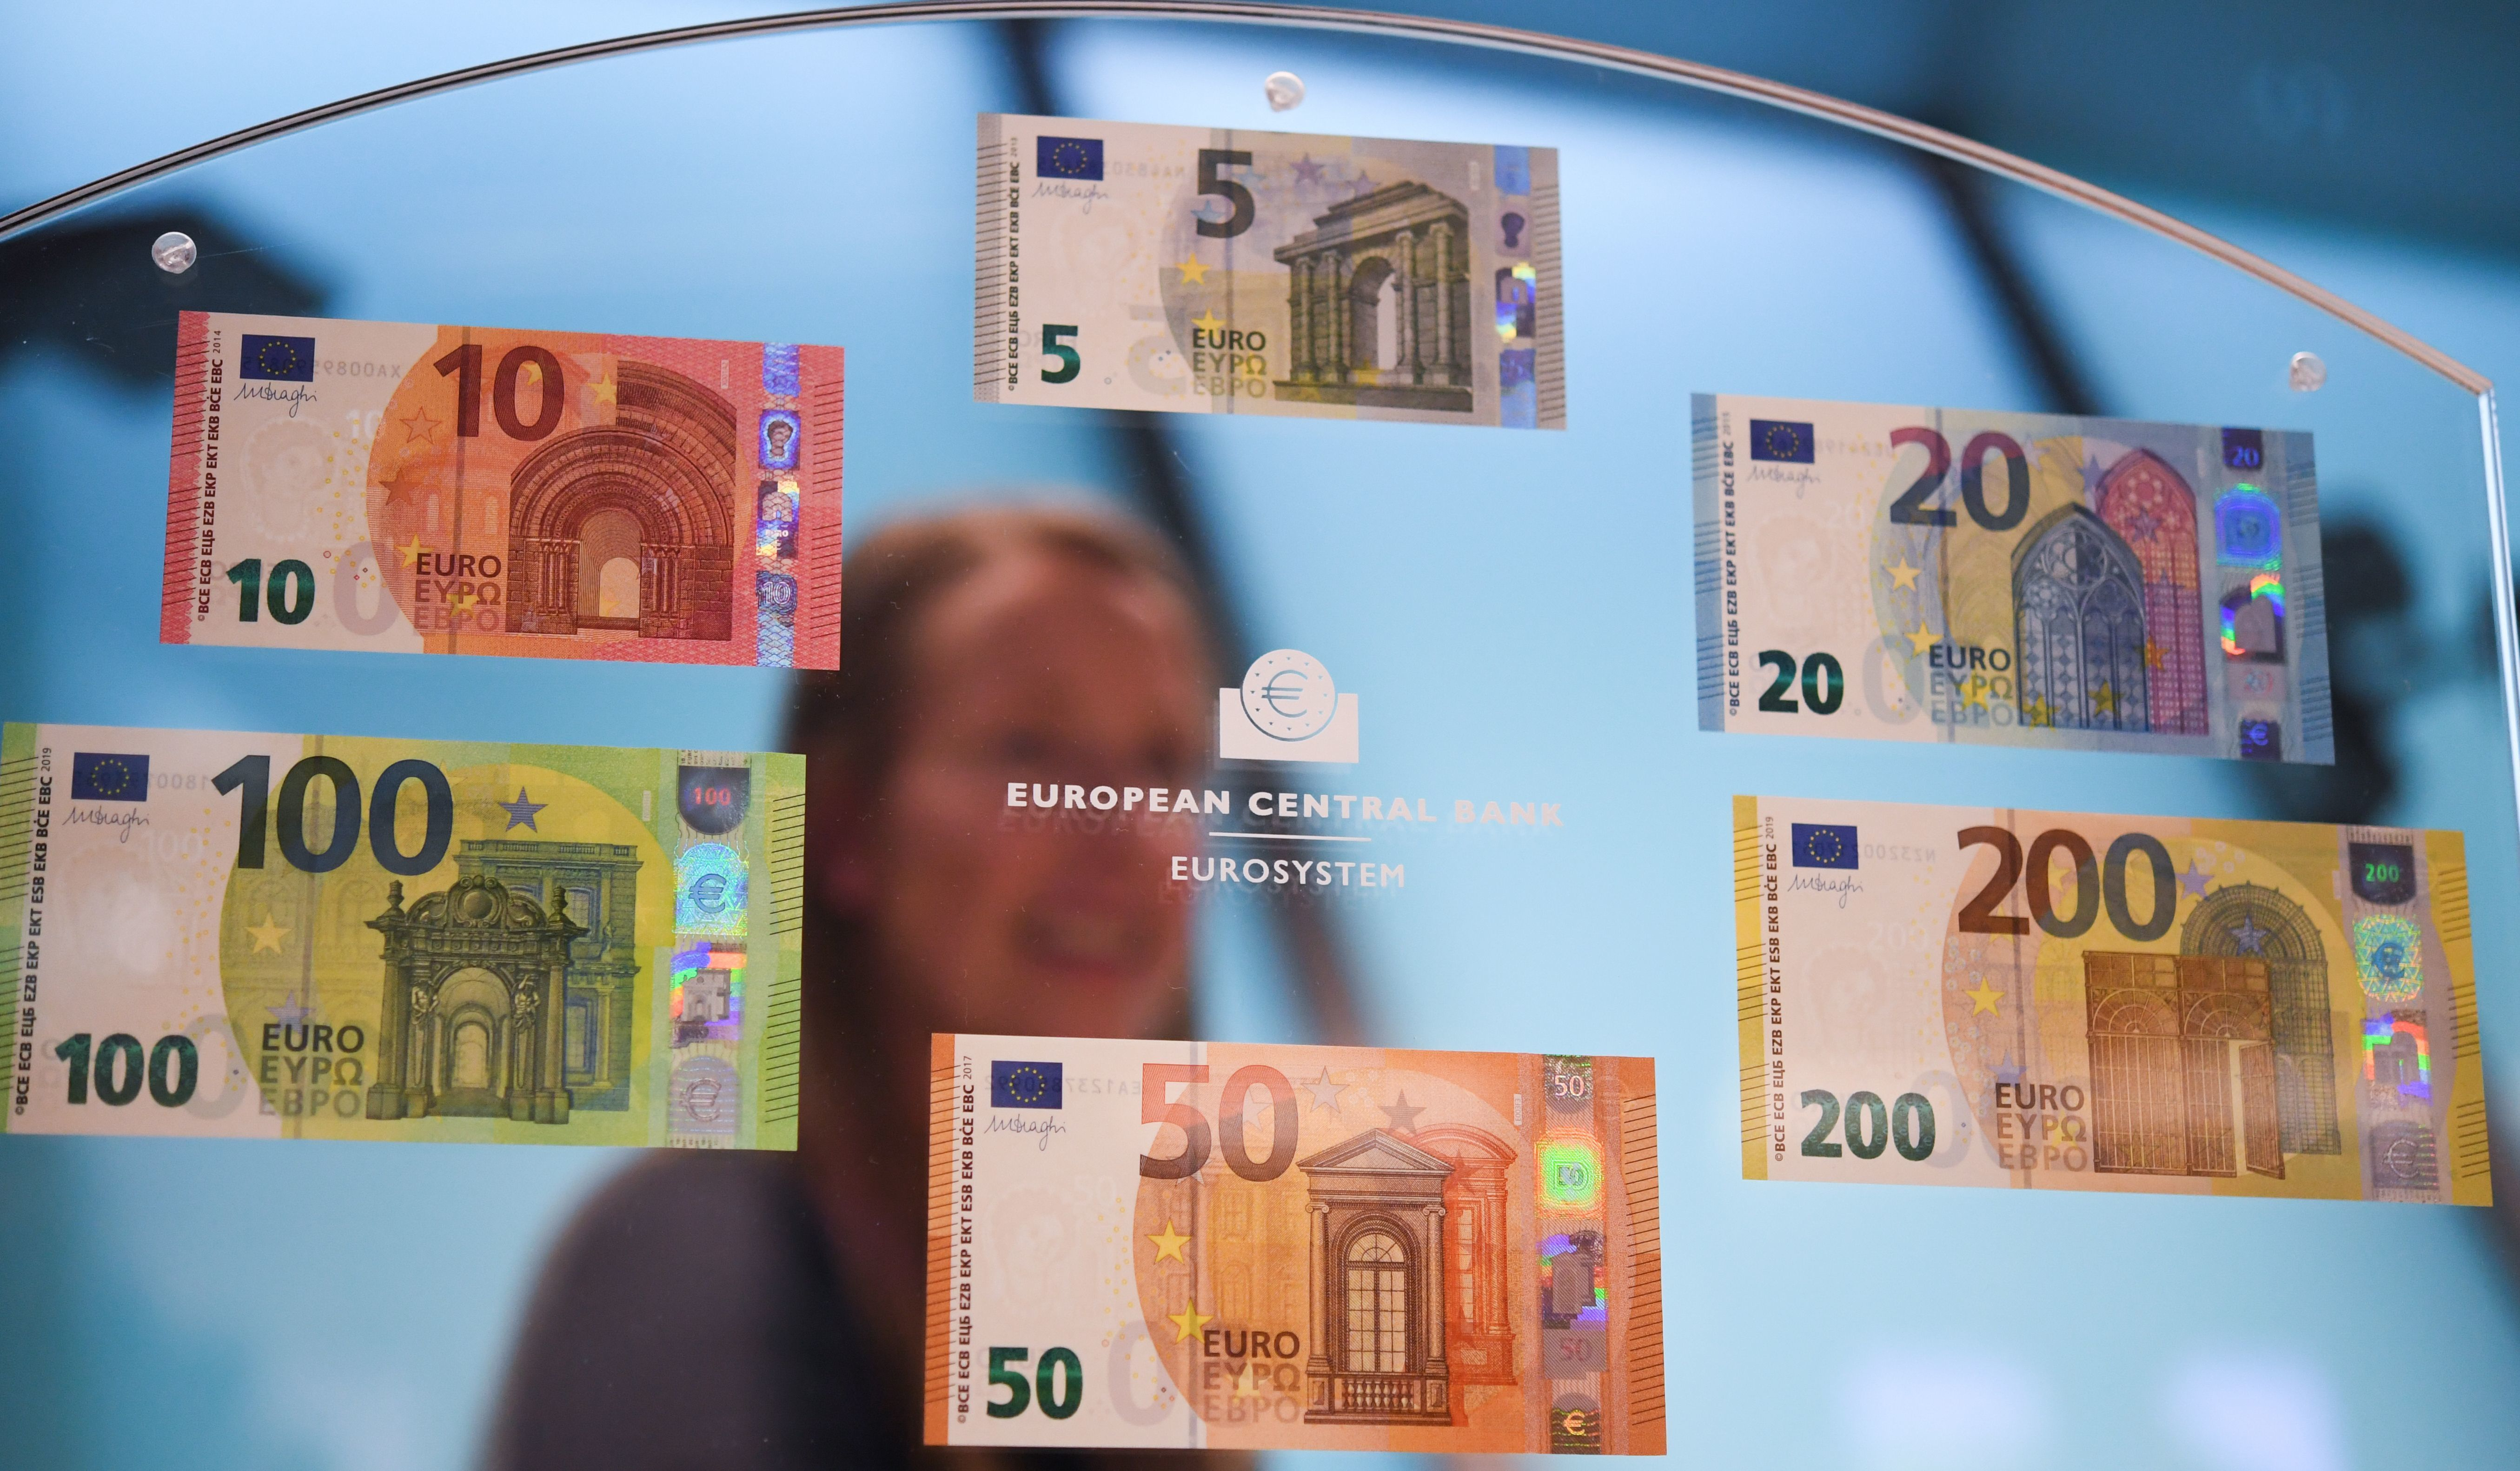 Cash Is Still King For Many In Germany